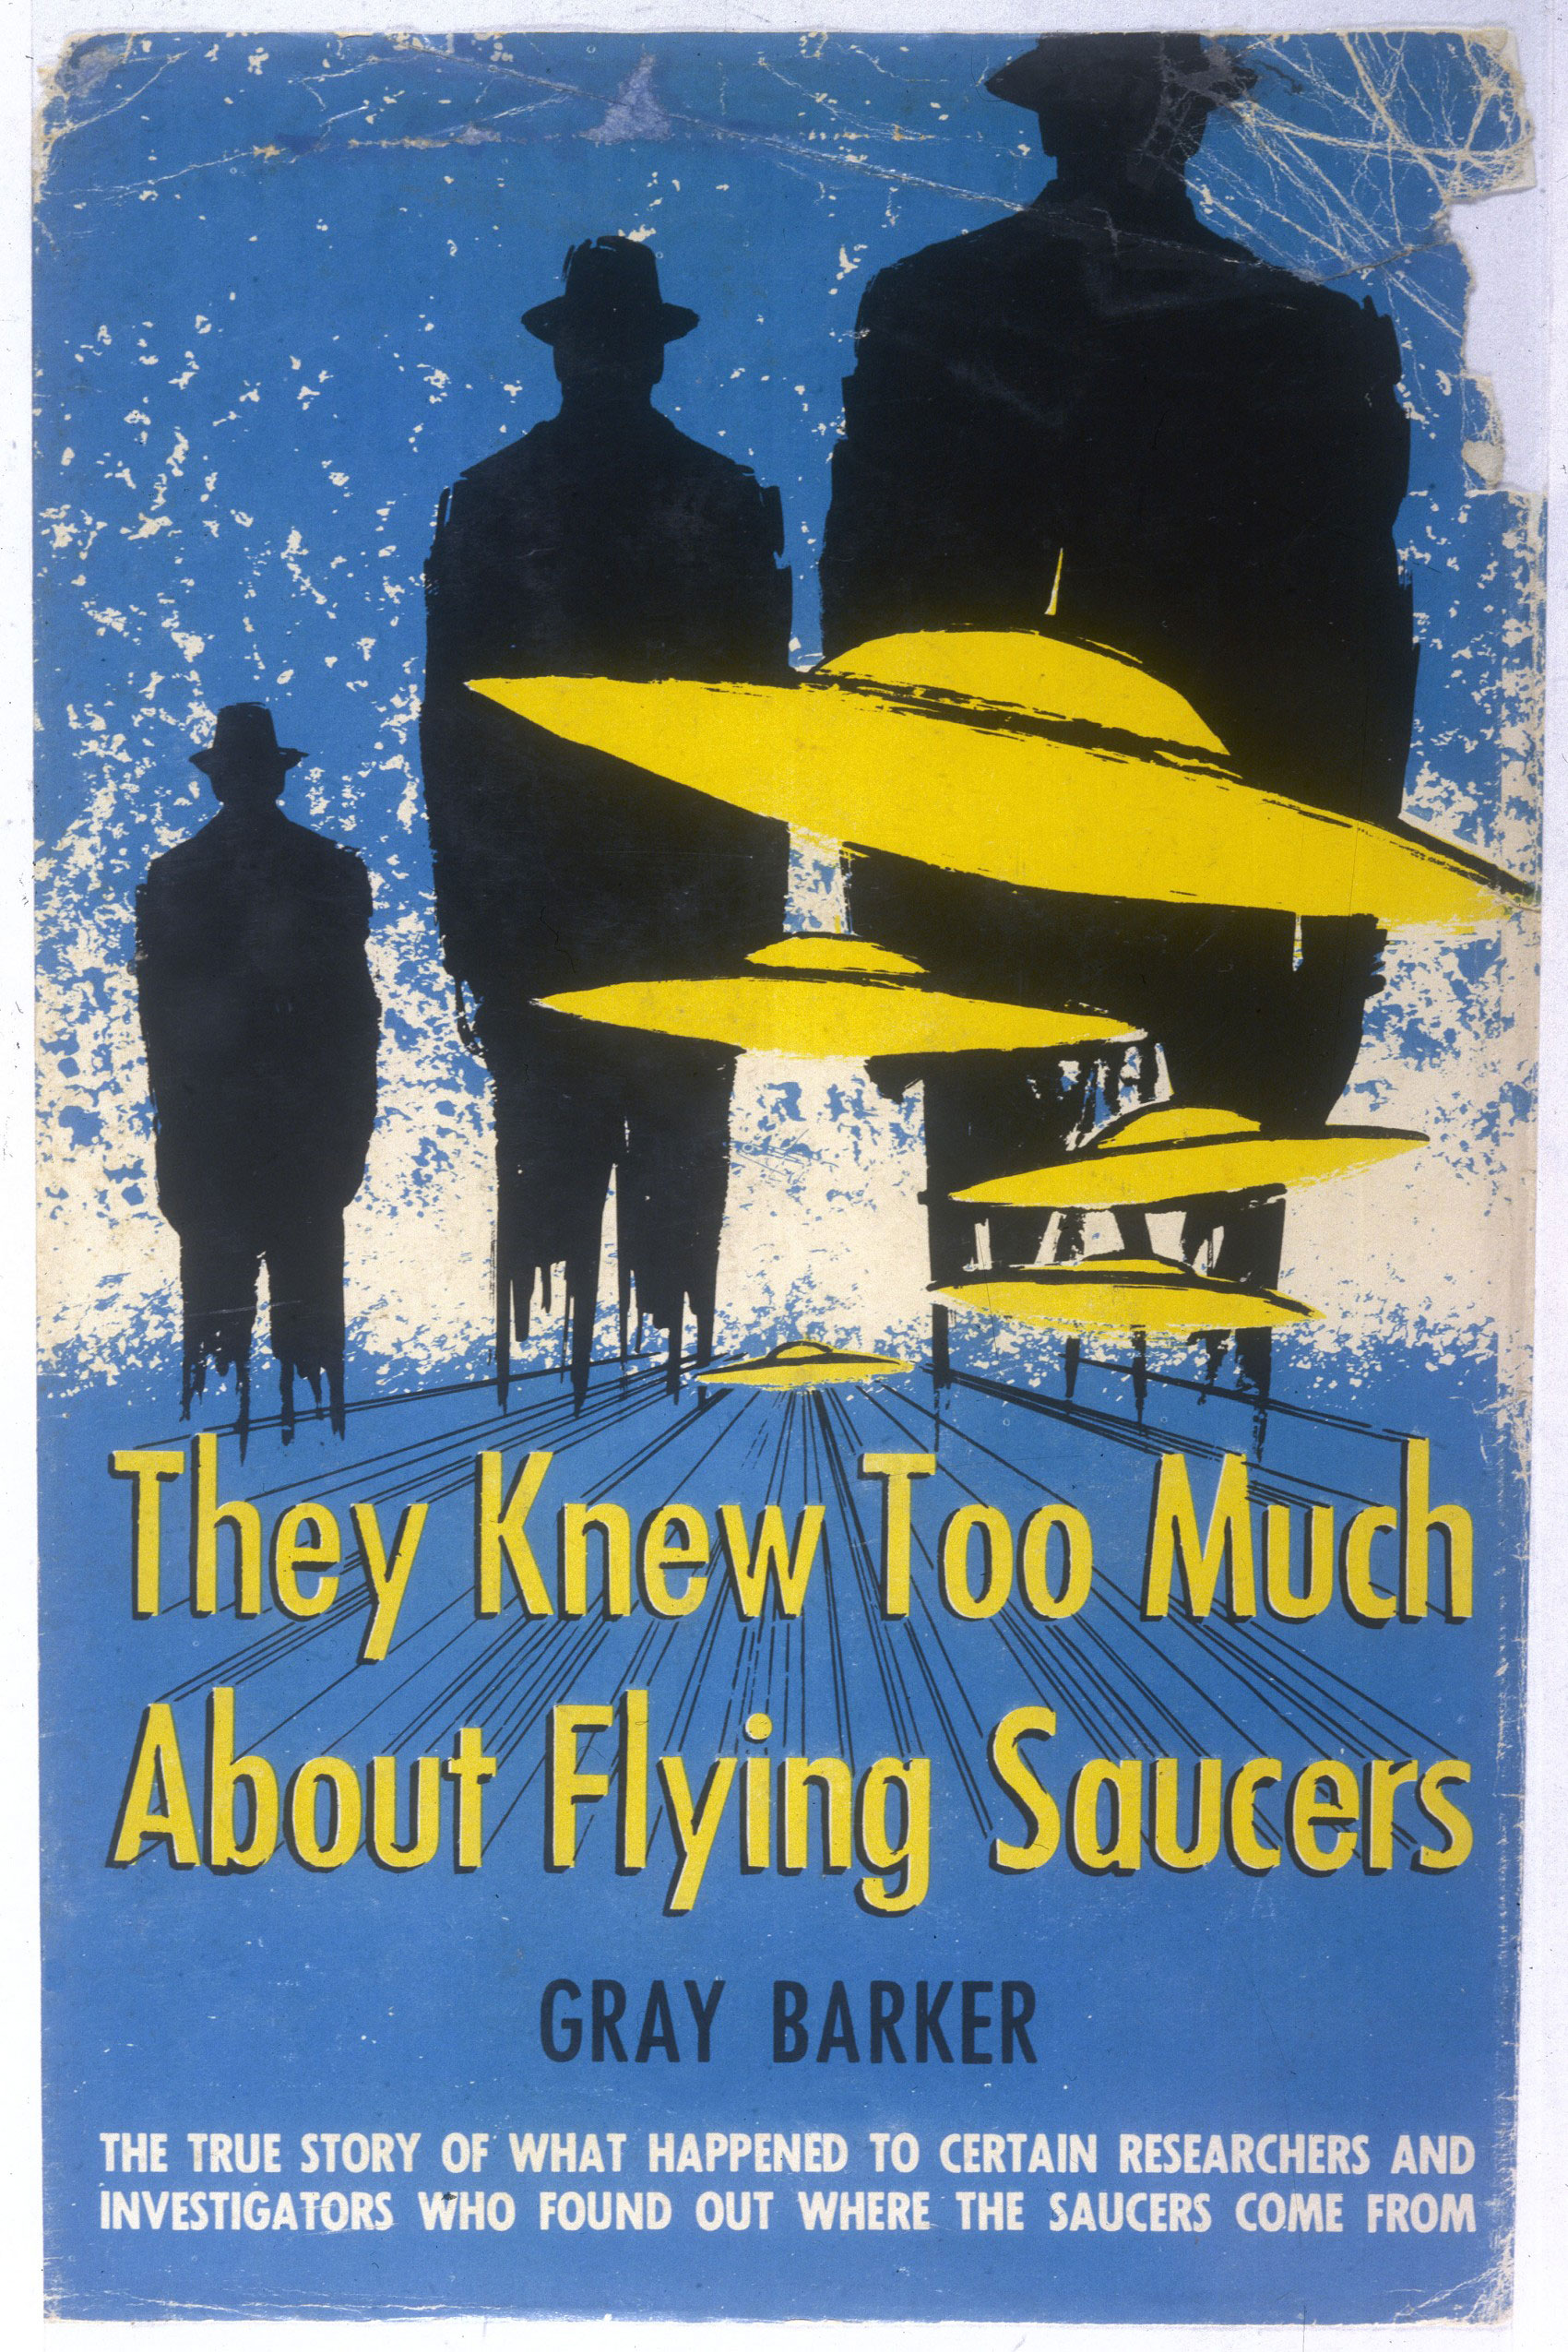 They Knew Too Much About Flying Saucers